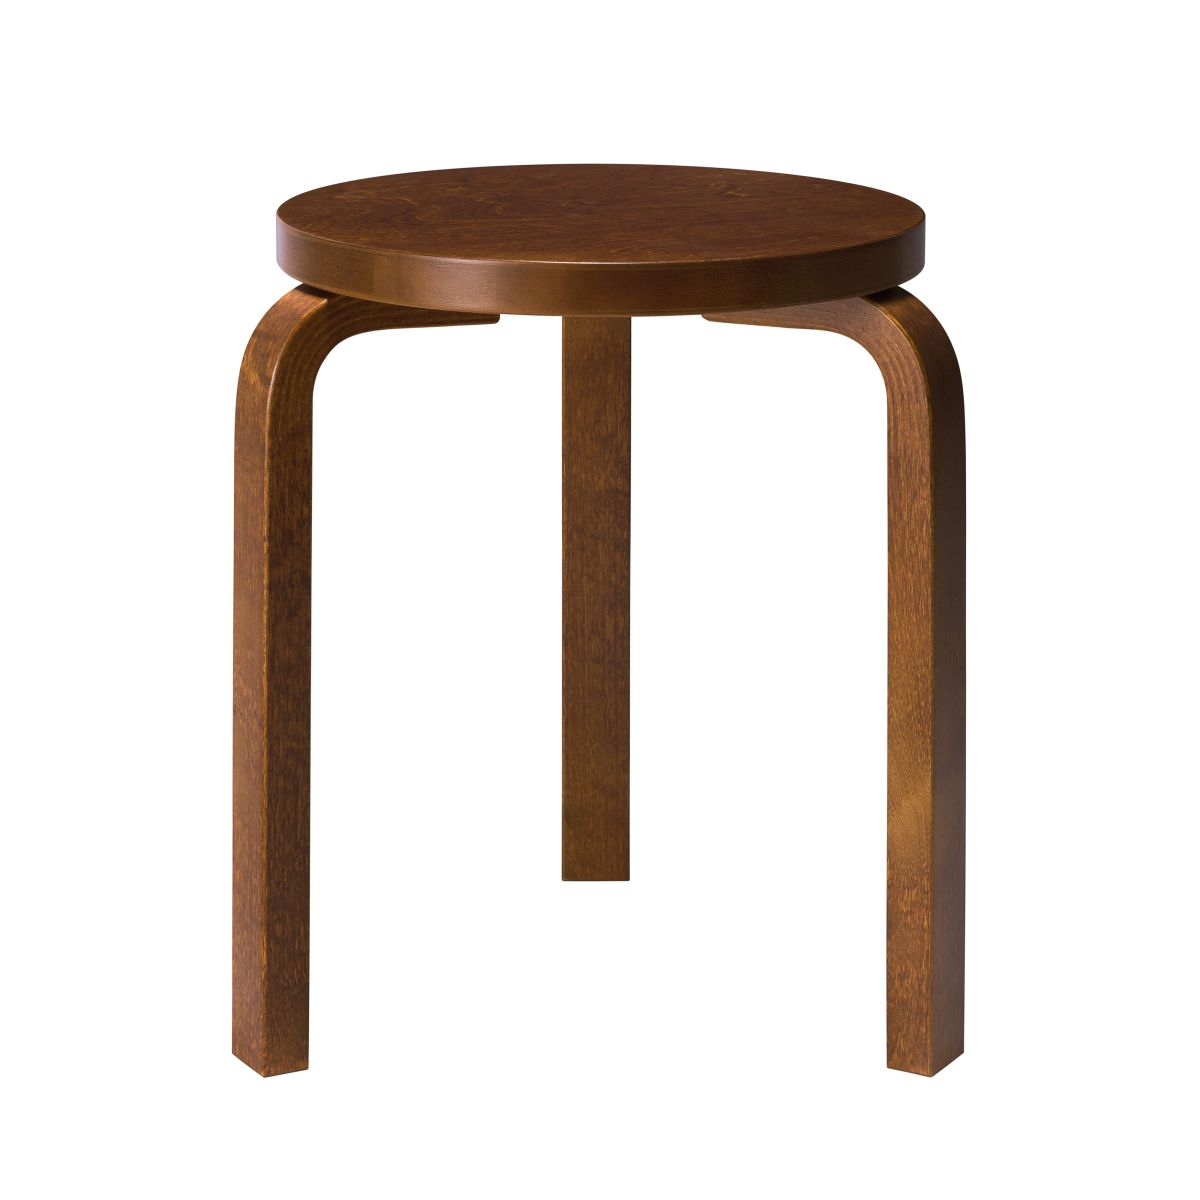 Stool 60 walnut stain